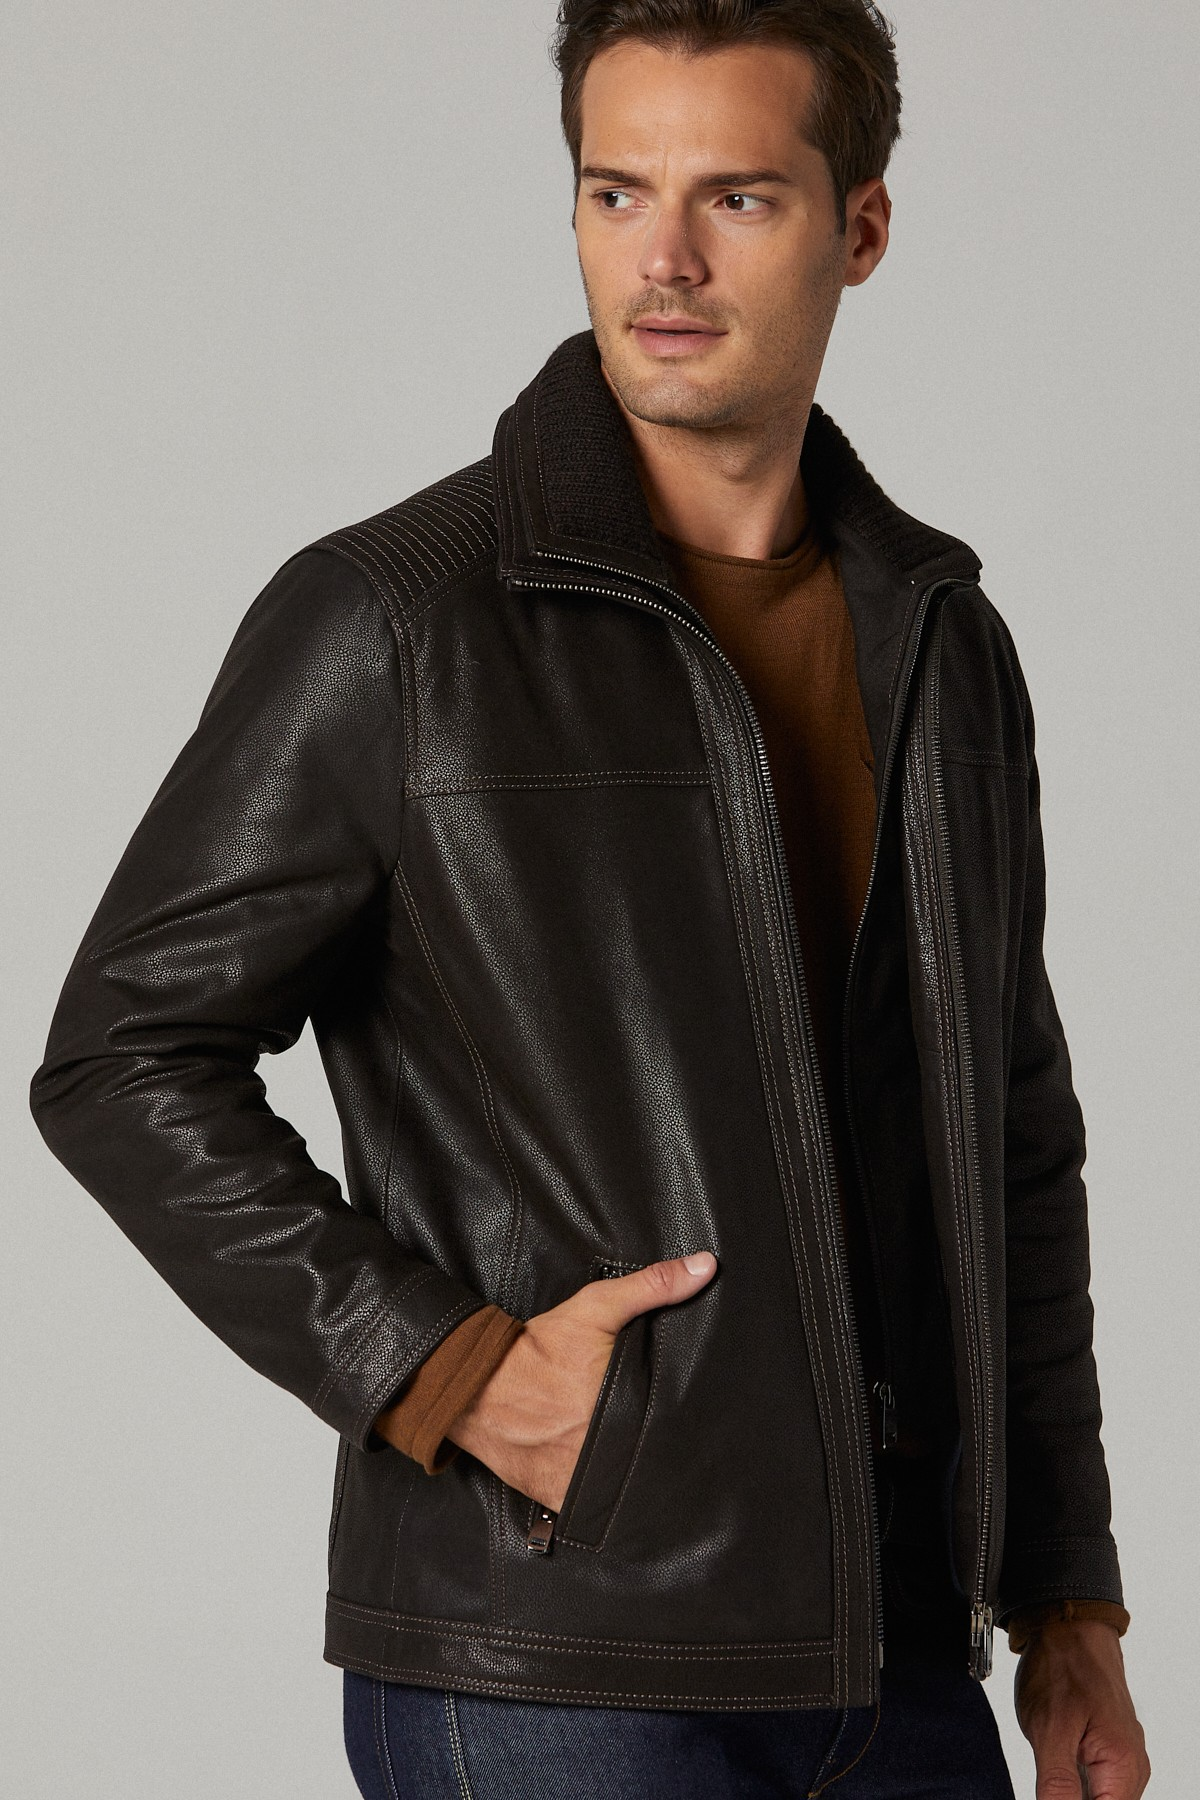 Leather Jacket For Guys